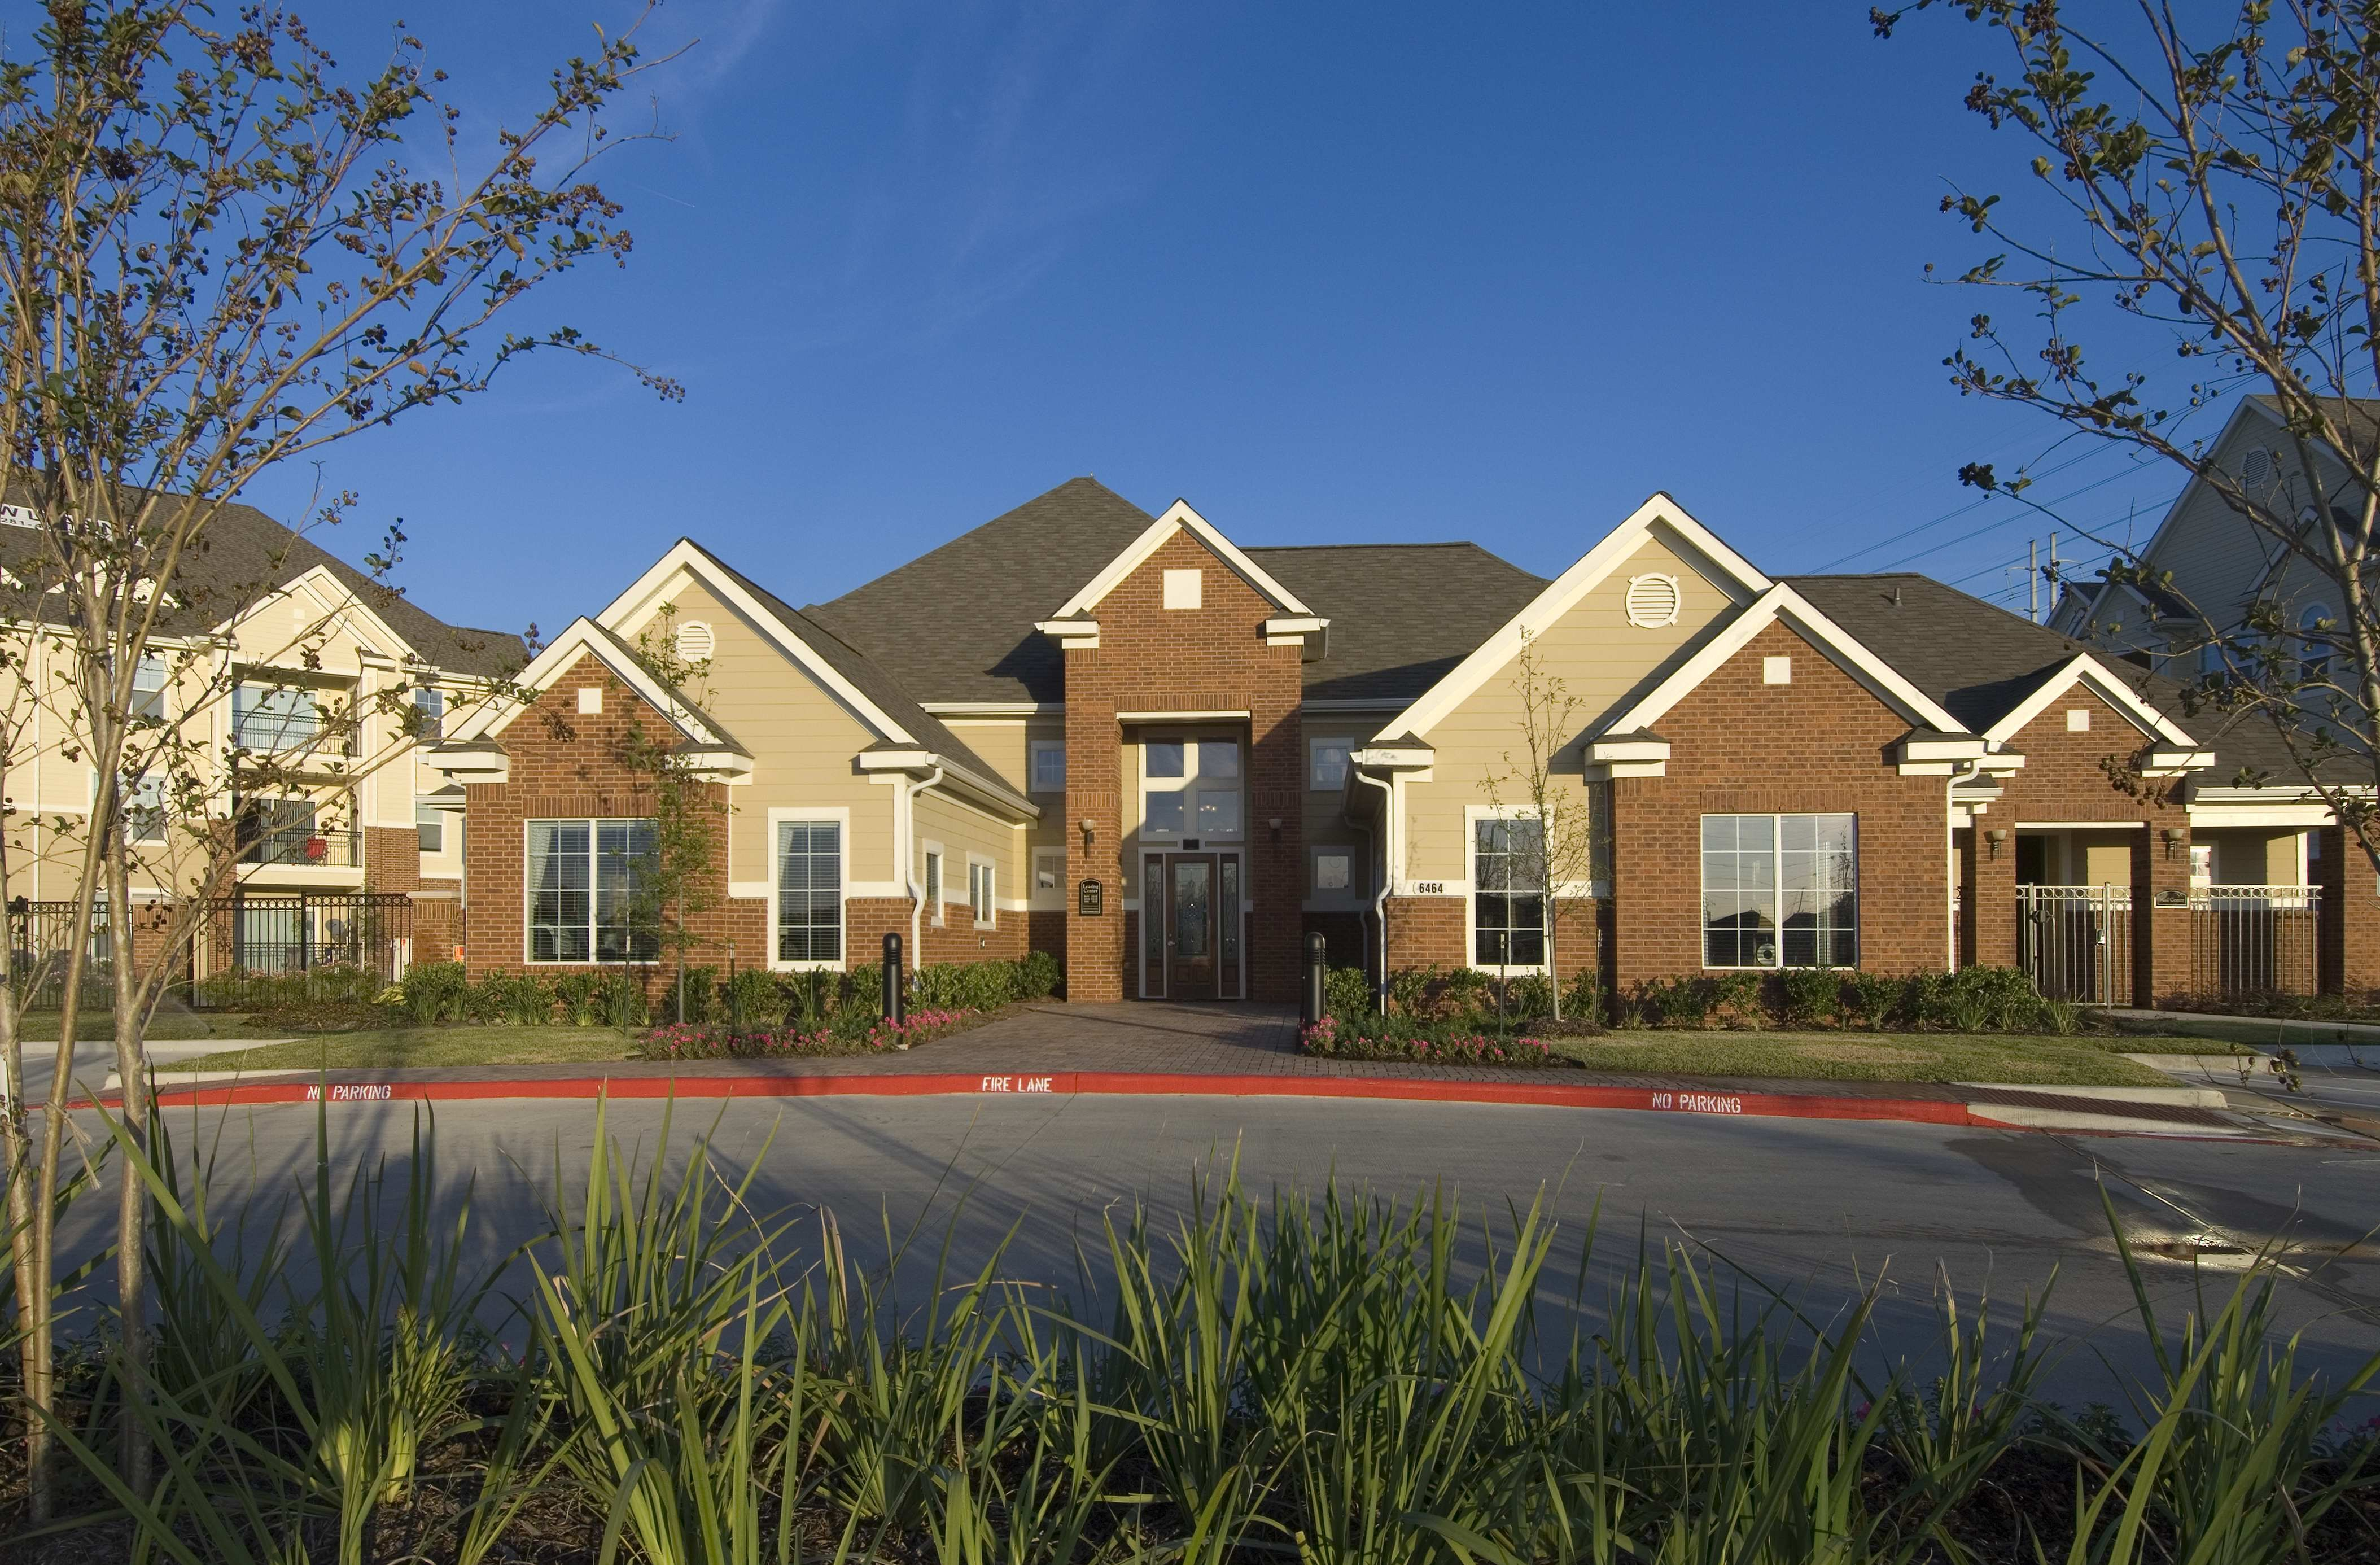 1900 Yorktown Luxury apartments currently available for